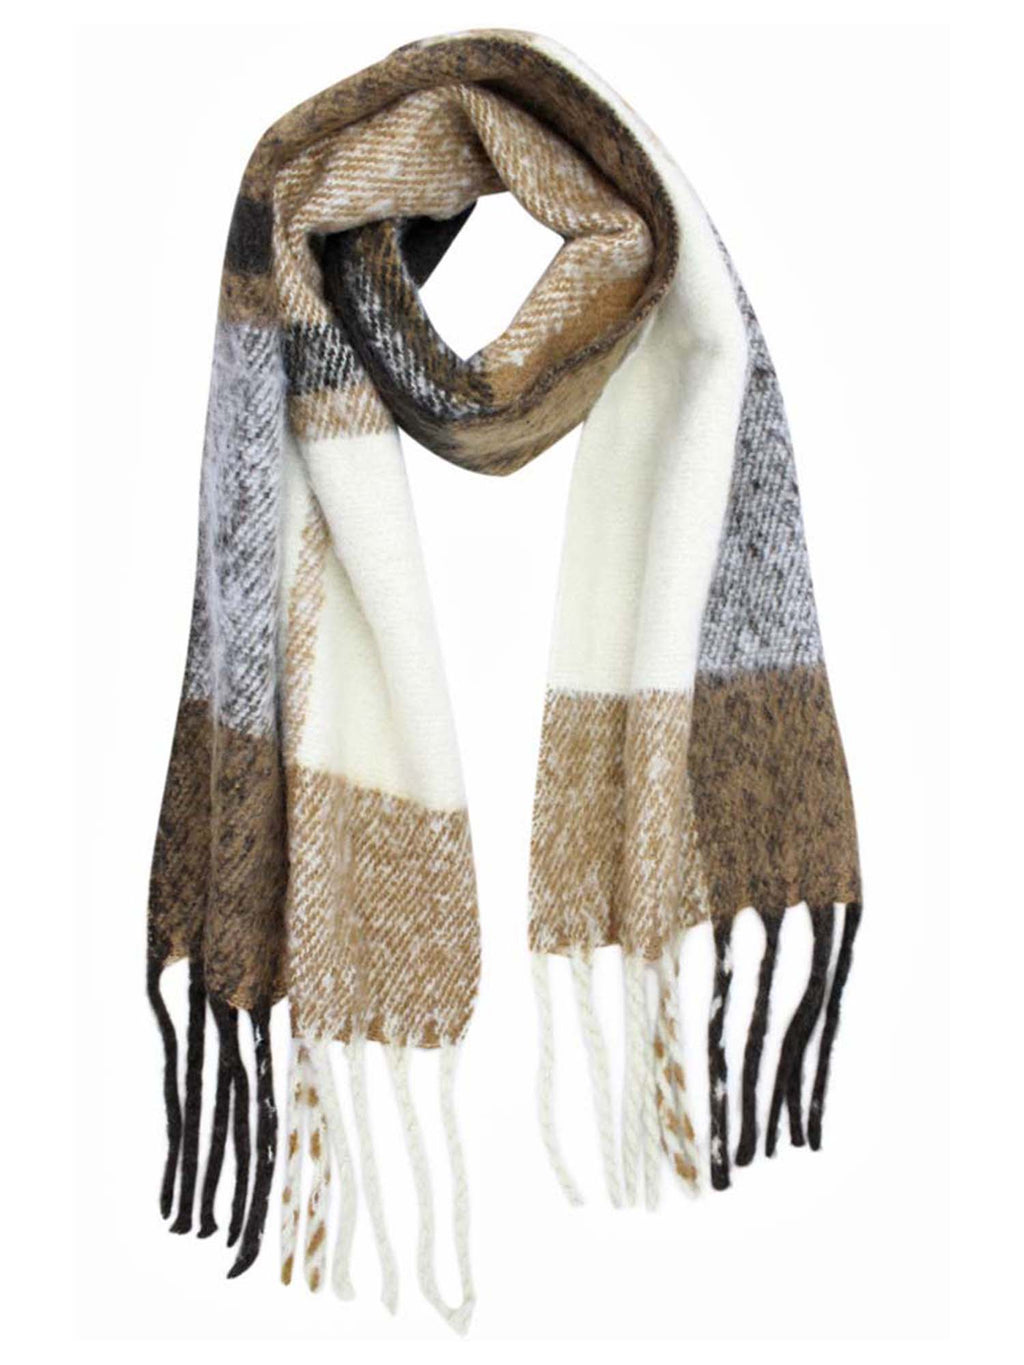 Unisex Plaid Print Soft Winter Scarf With Fringe